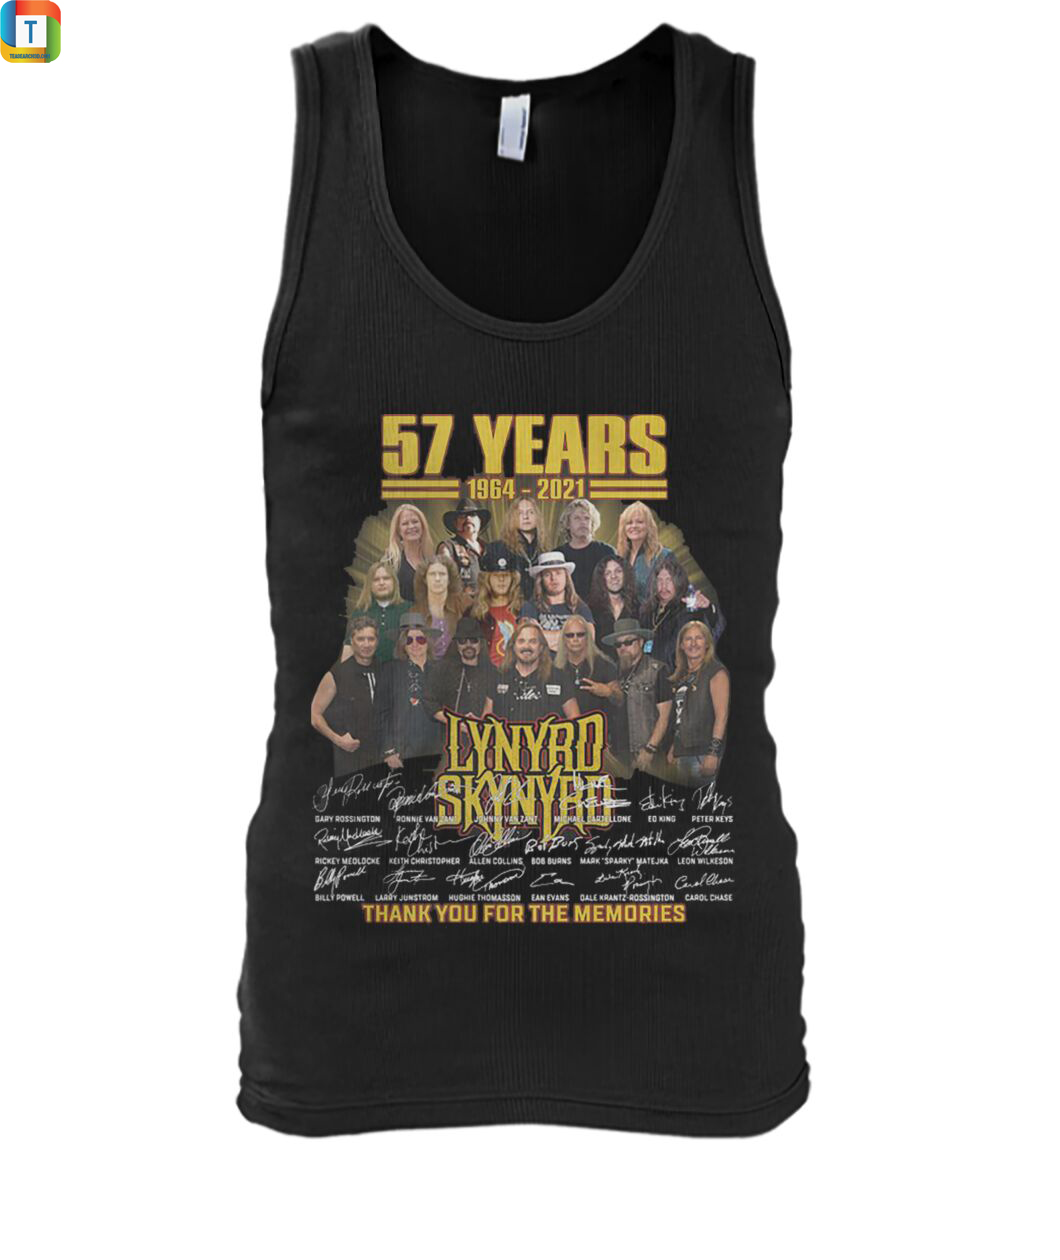 57 years Lynyrd Skynyrd thank you for the memories tank top